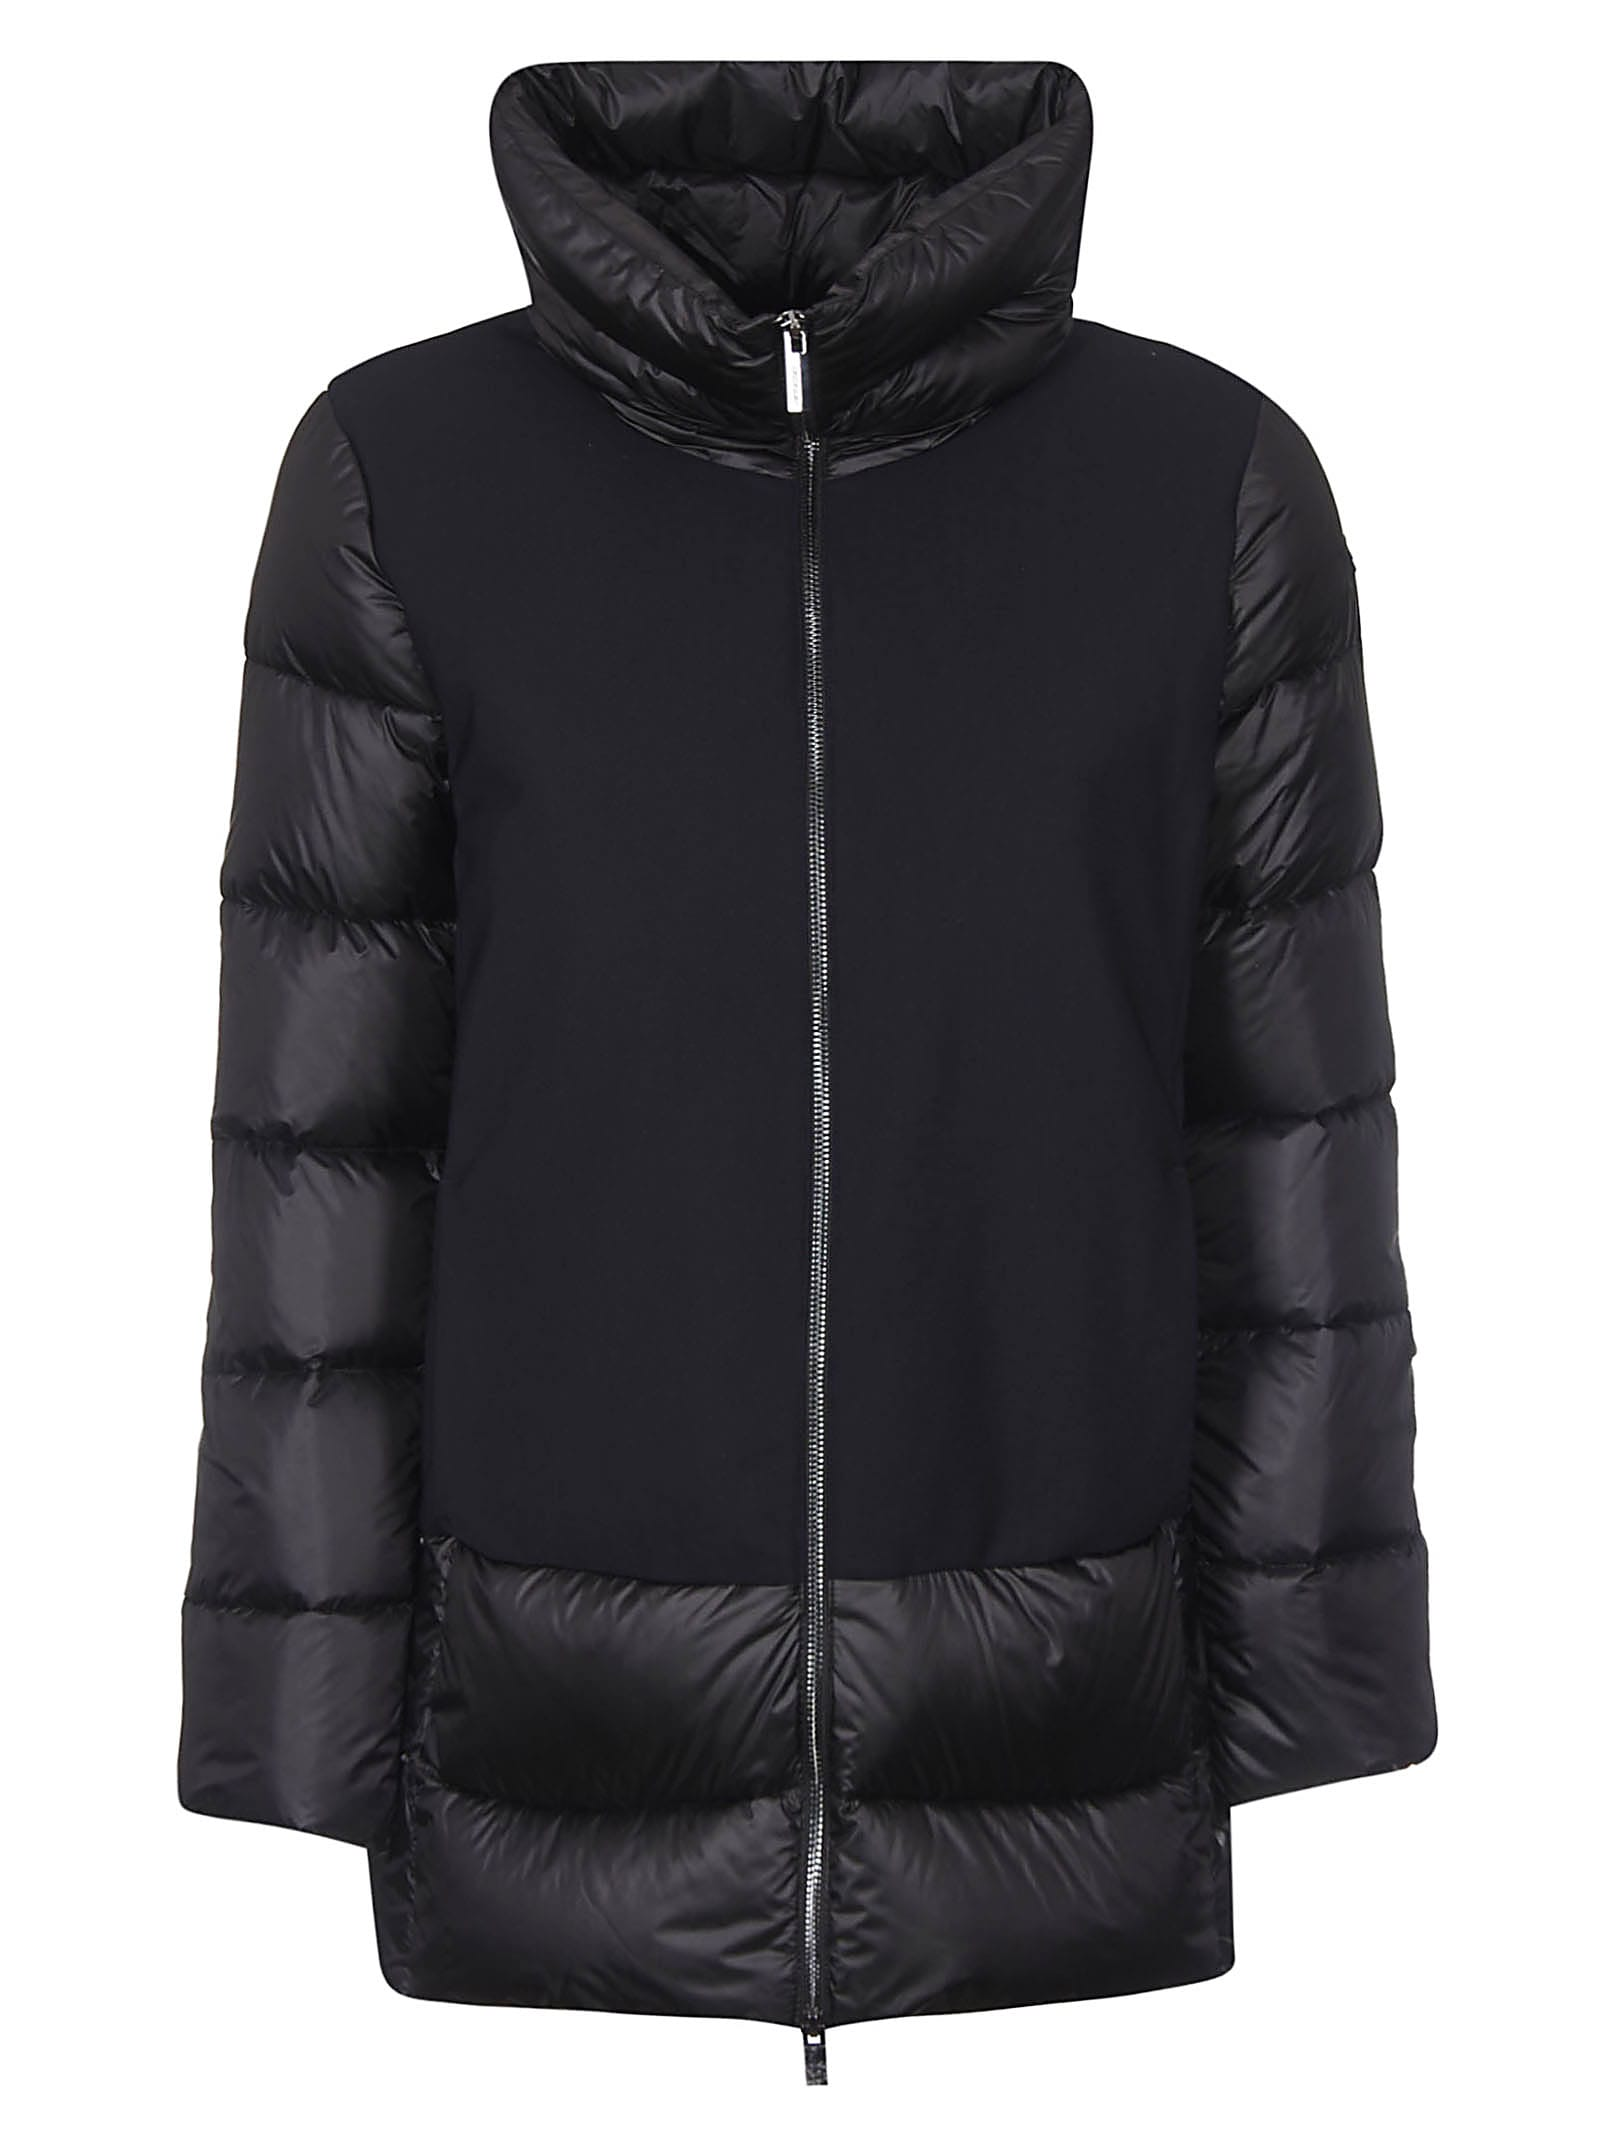 RRD - Roberto Ricci Design High Neck Padded Detail Jacket